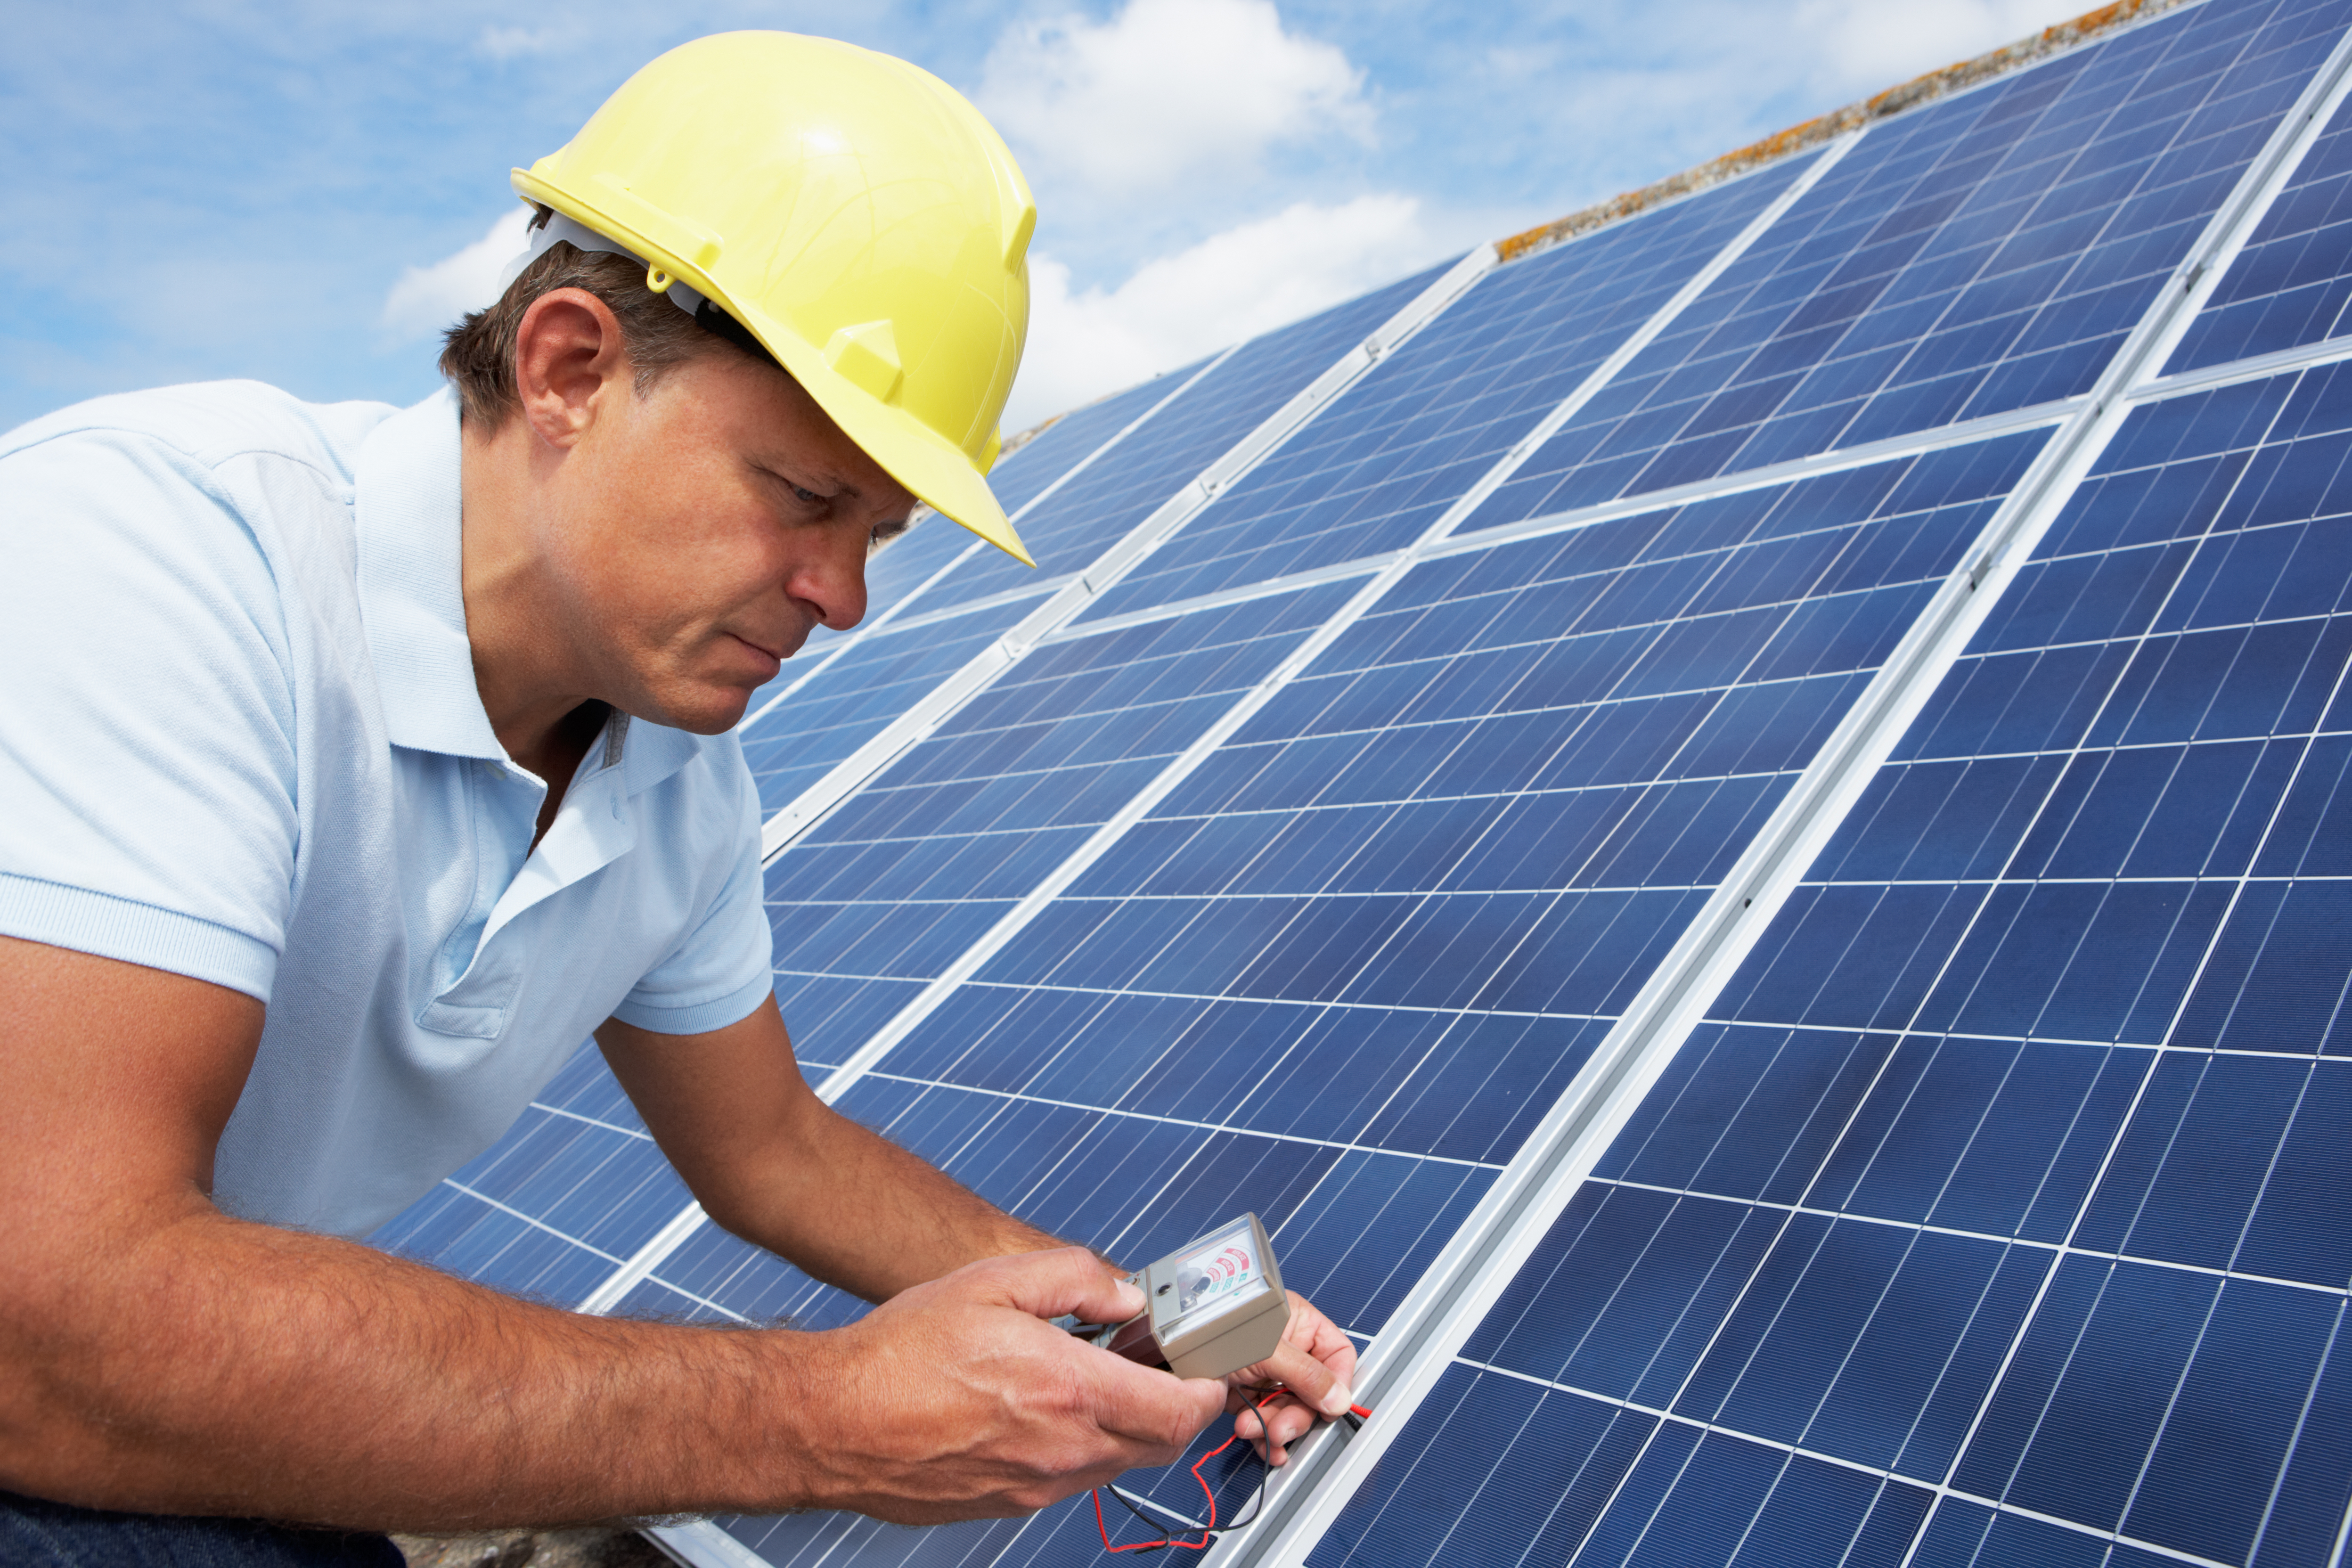 Man wearing hard hat checking roof solar panels